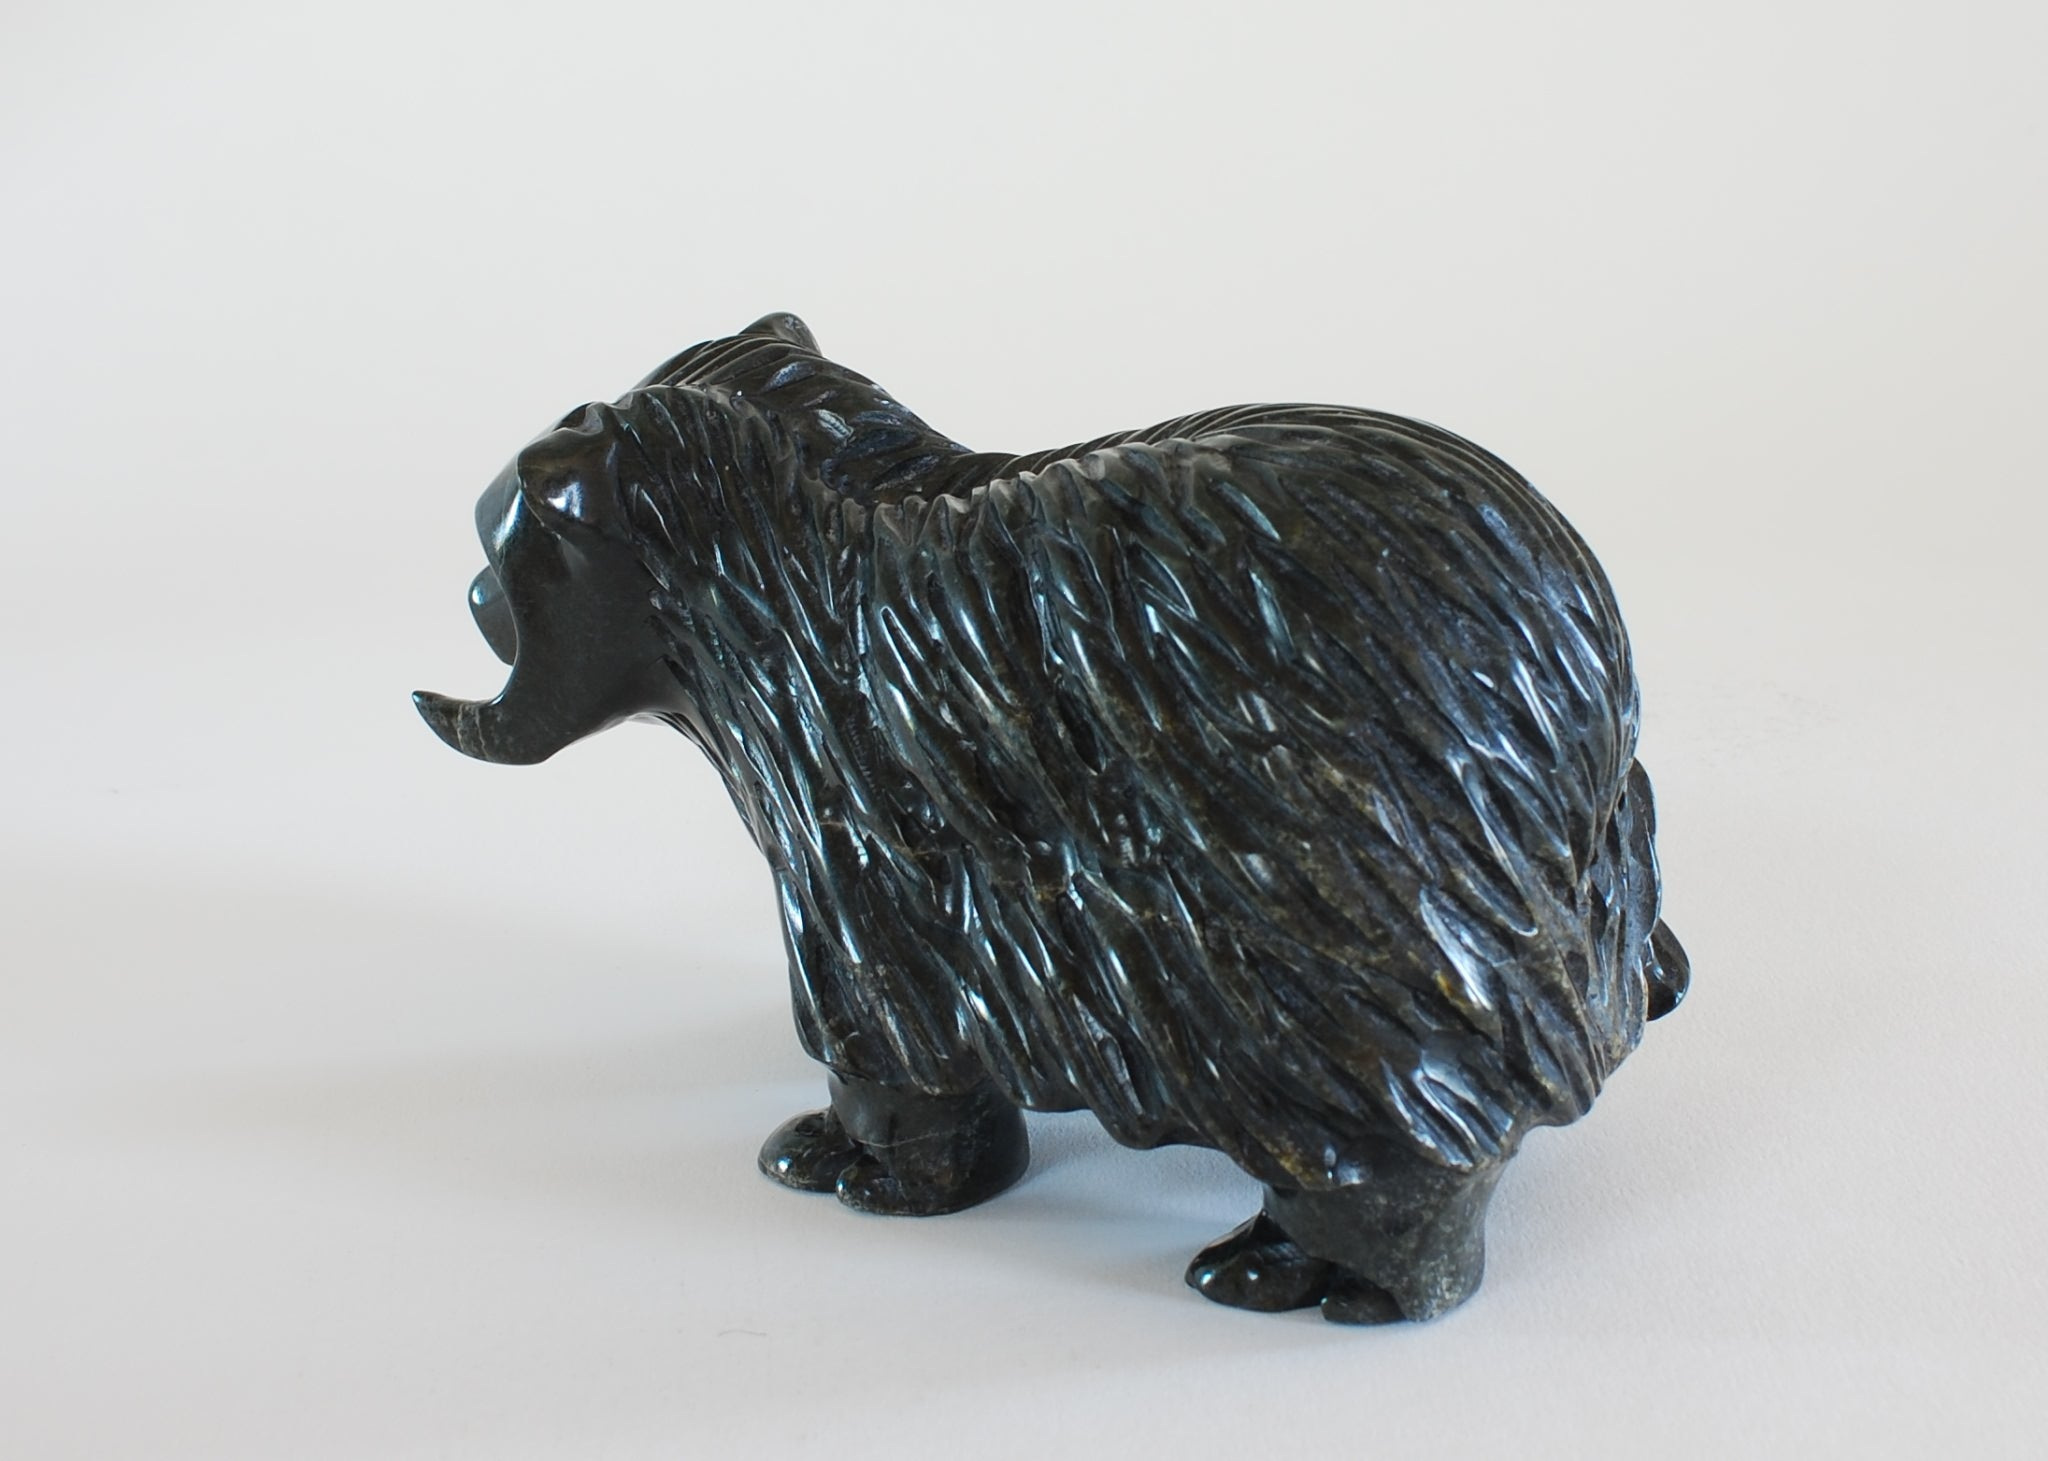 Musk Ox by Kelly Etidloie of Kingait